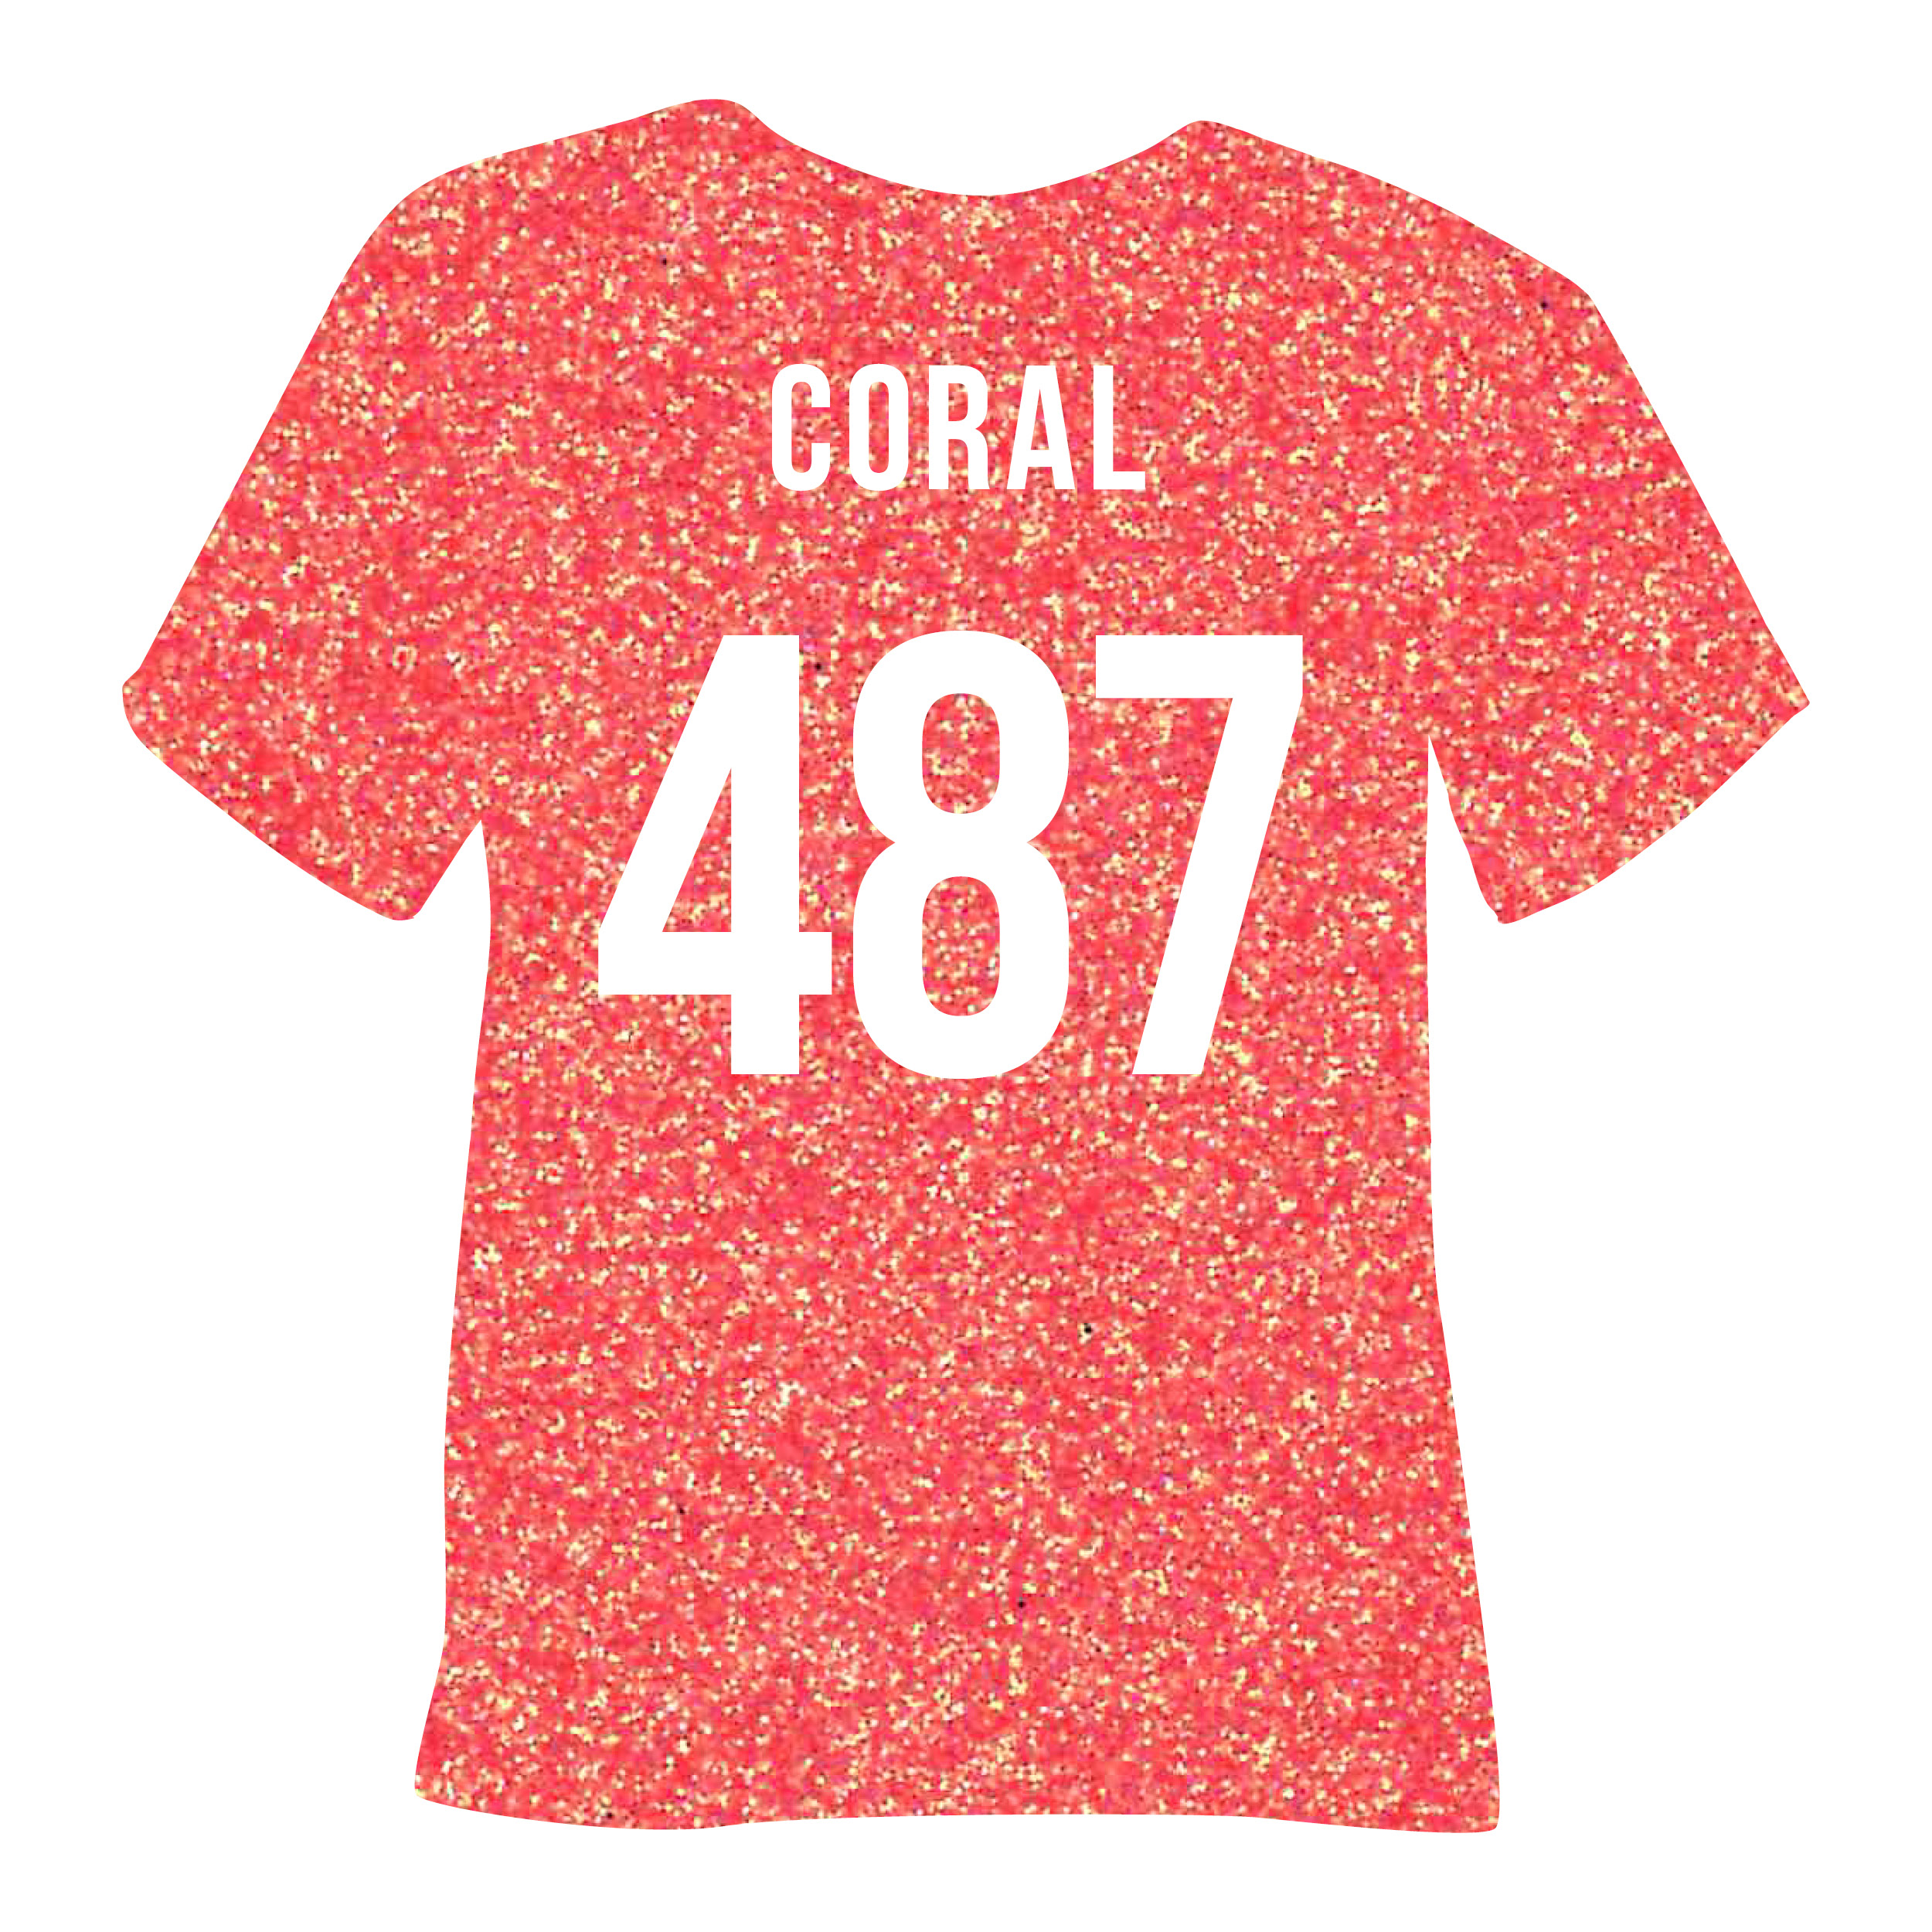 487 CORAL